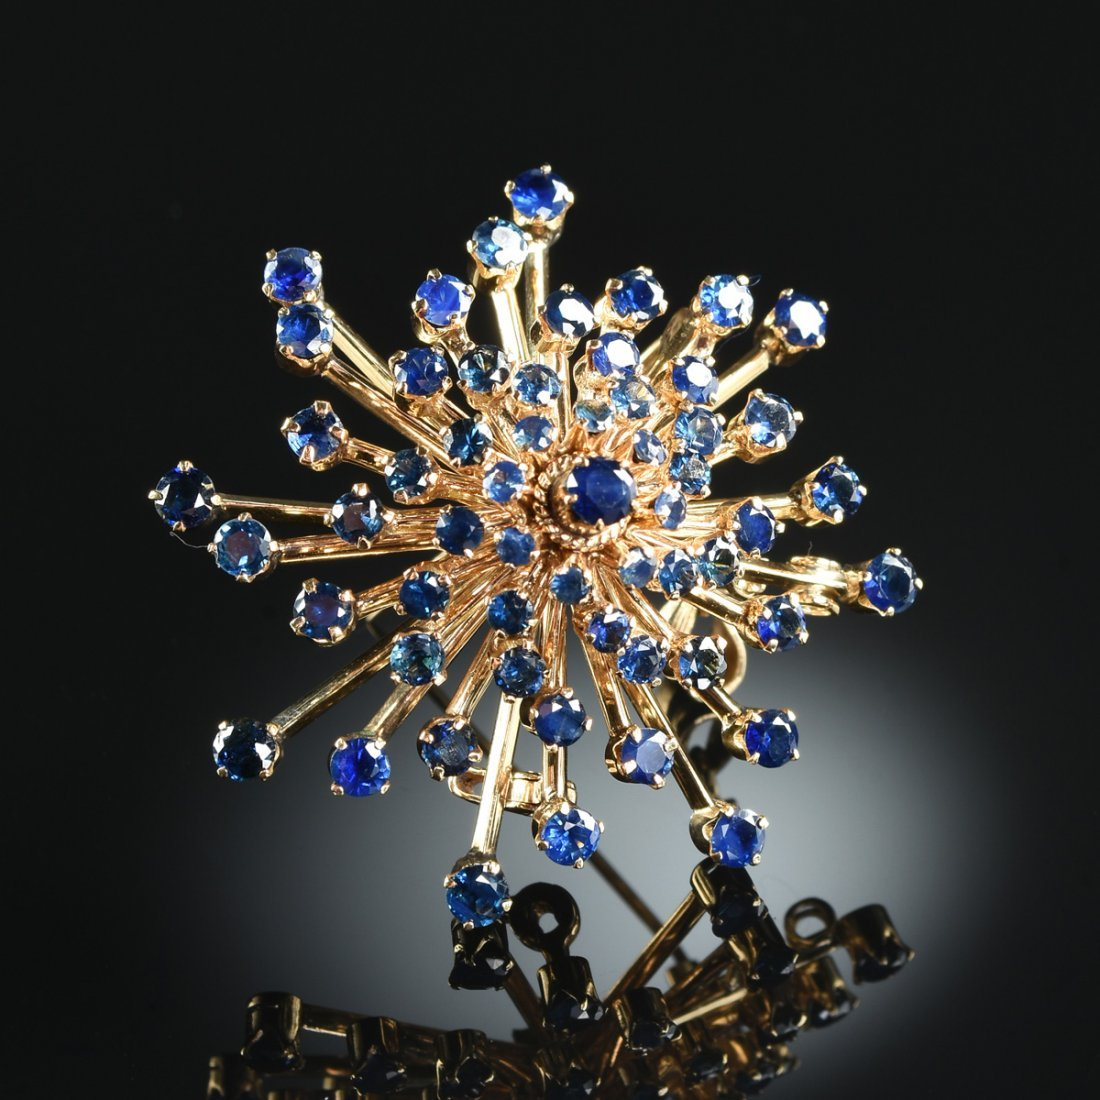 AN 18K YELLOW GOLD AND SAPPHIRE LADY'S BROOCH/PENDANT,